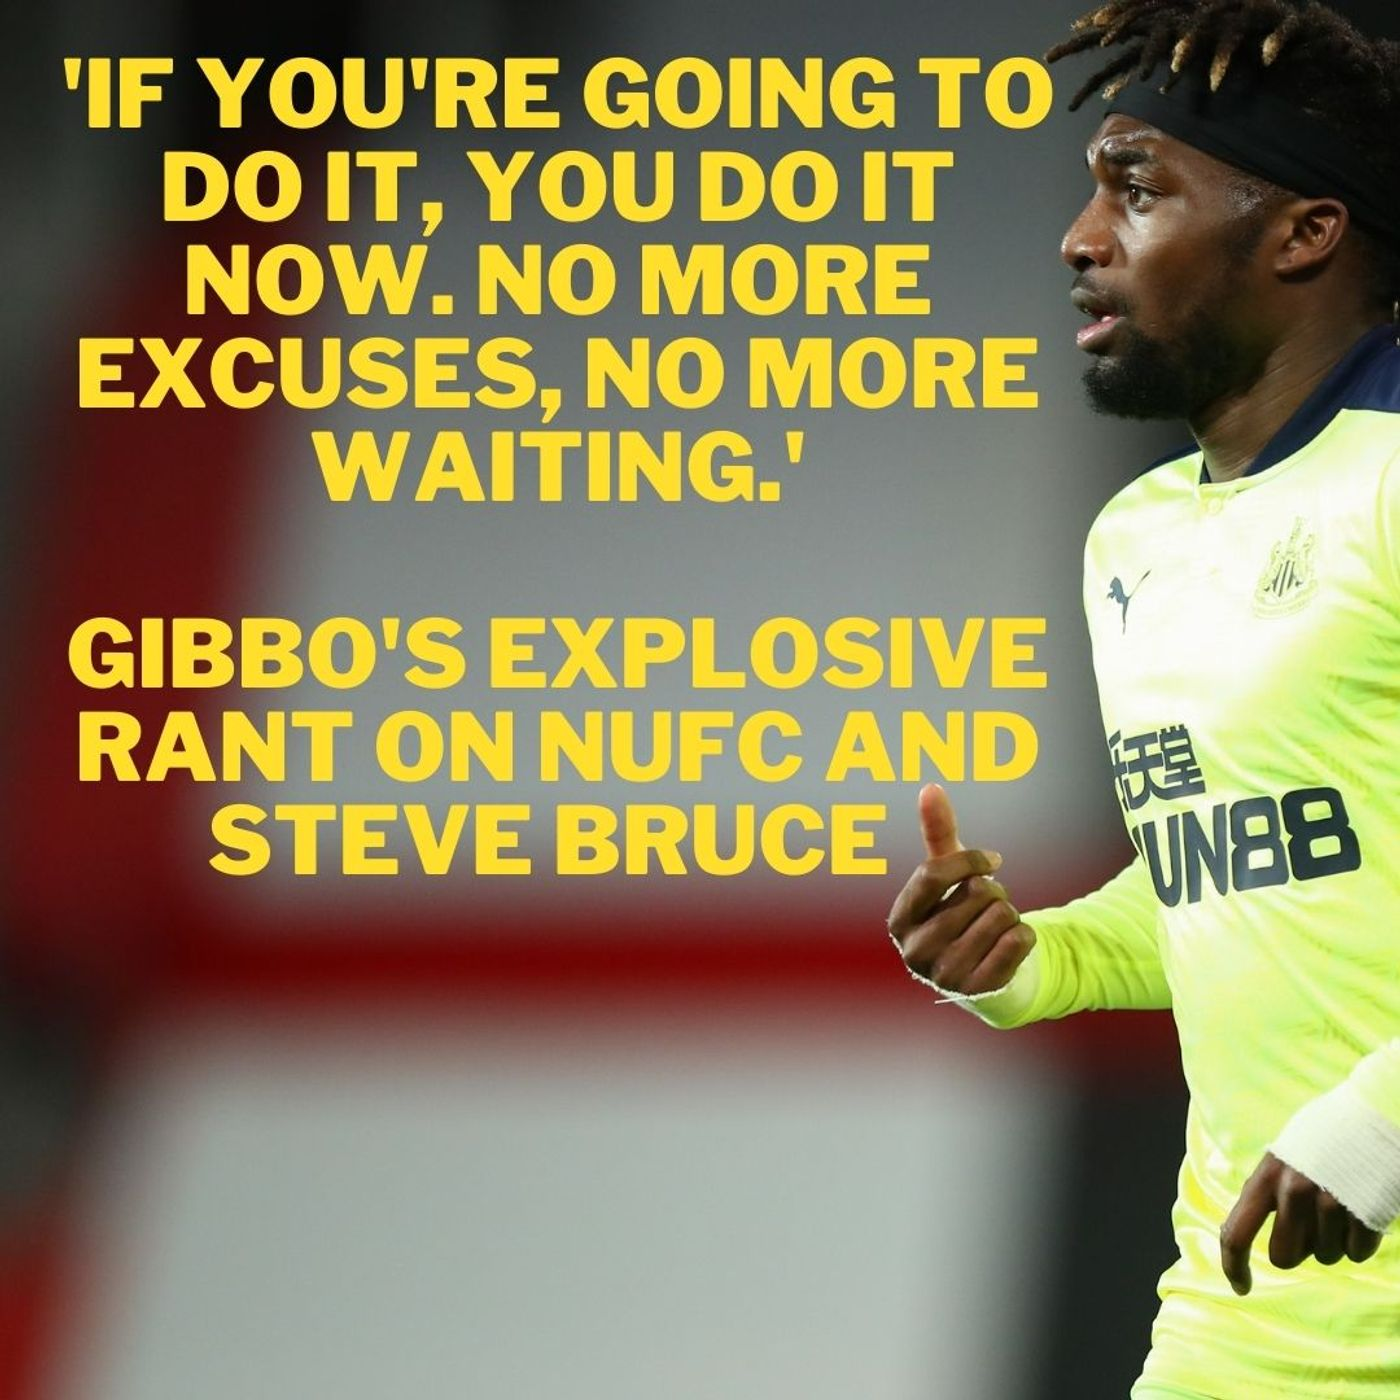 'If you're going to do it - do it now. No more excuses' - Gibbo's explosive rant on NUFC and Steve Bruce